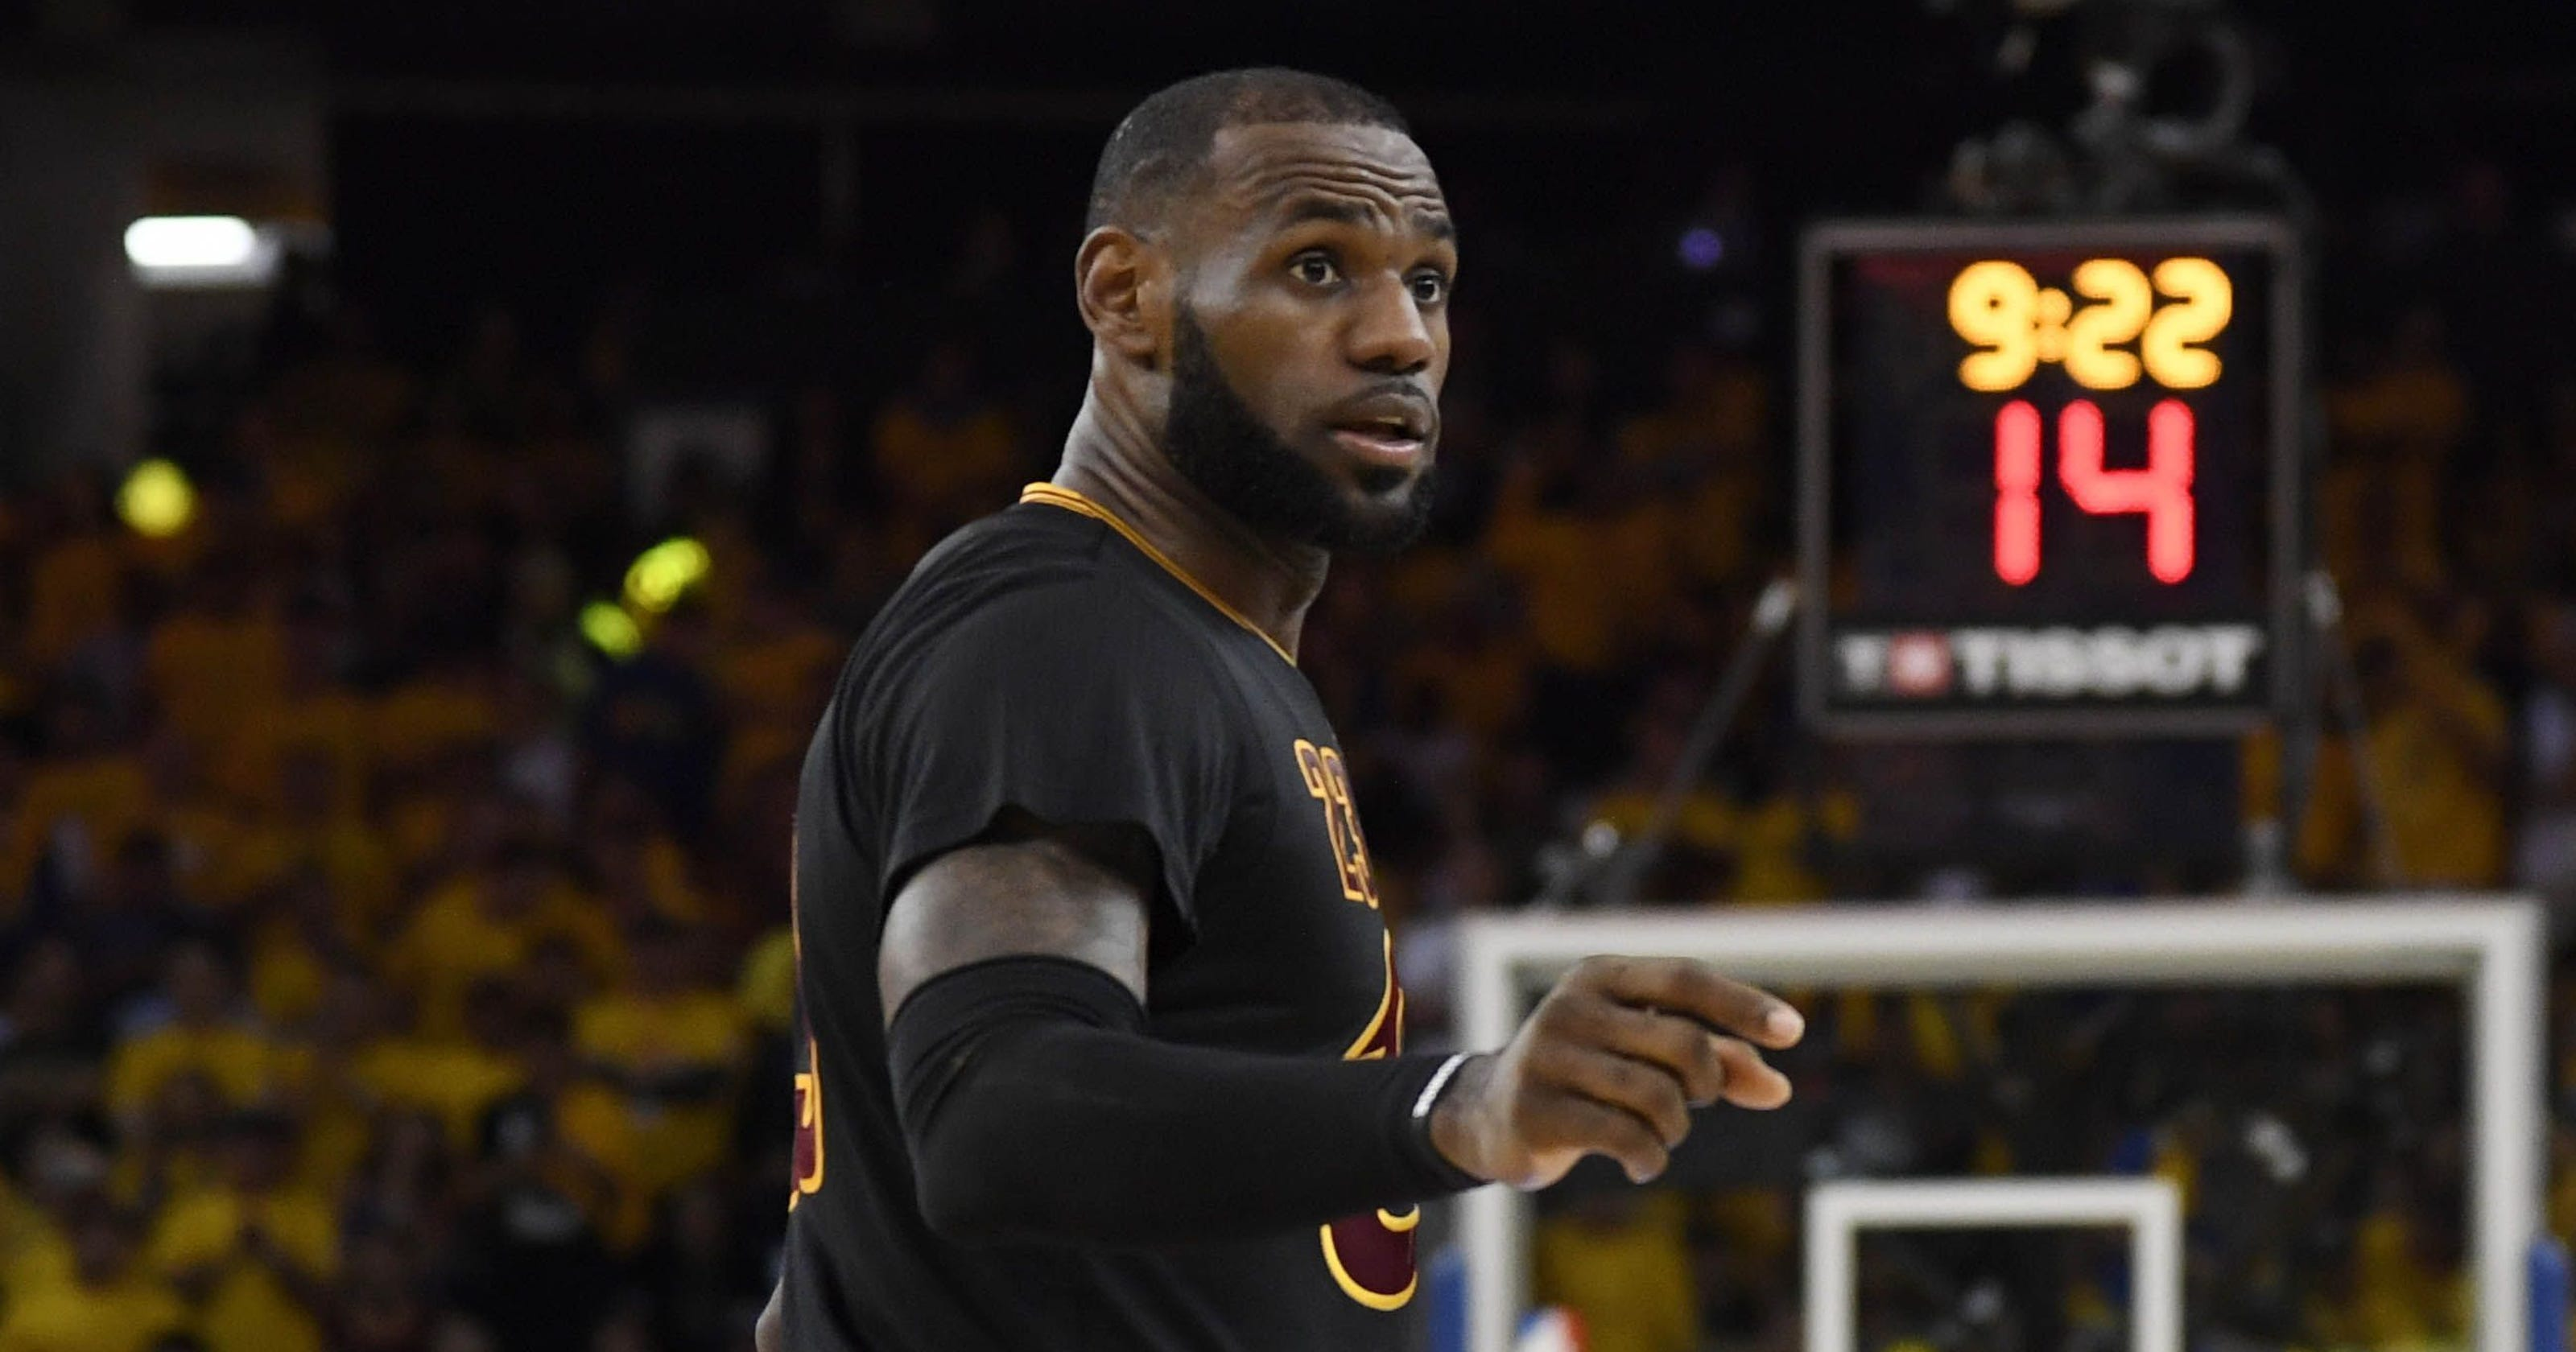 LeBron James pushed out of the way of brawl after Cavs  Game 2 loss d3c1a3c0b